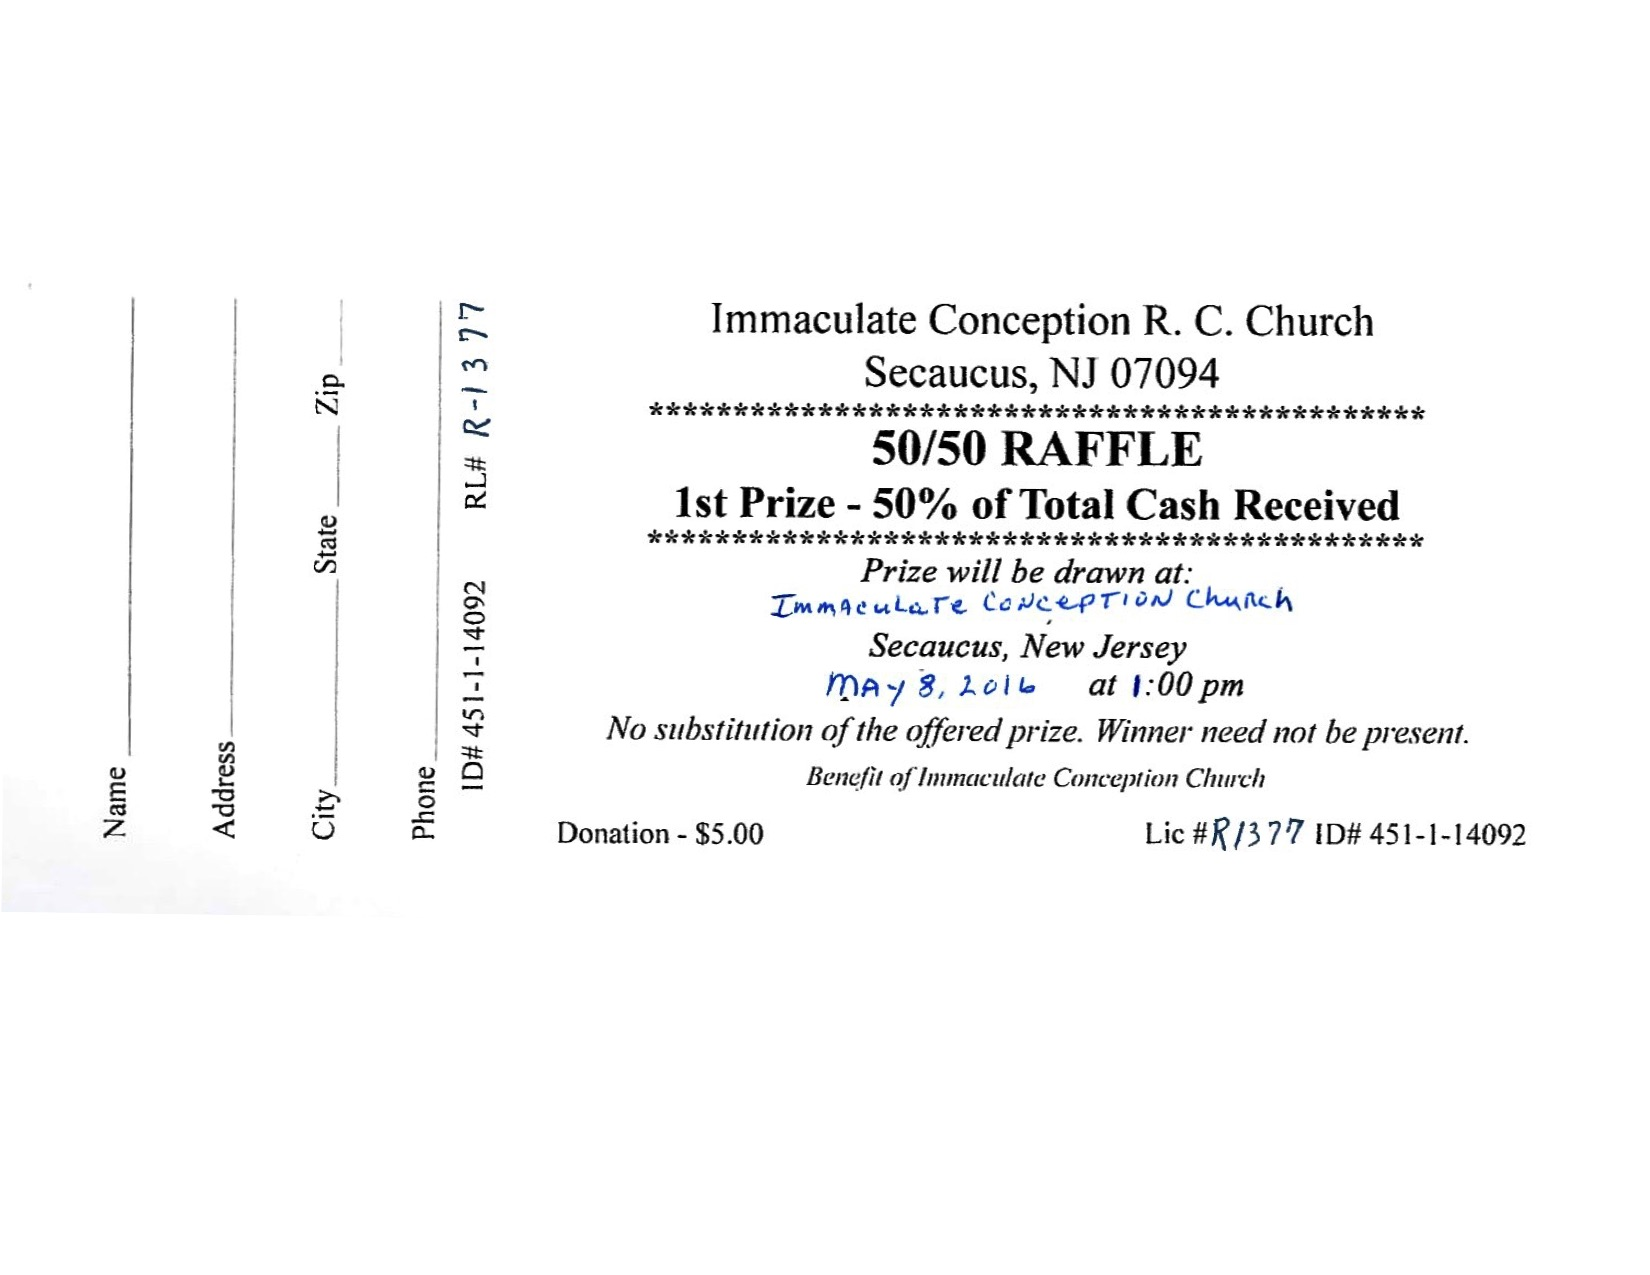 immaculate conception church icc mother s day 50 50 raffle